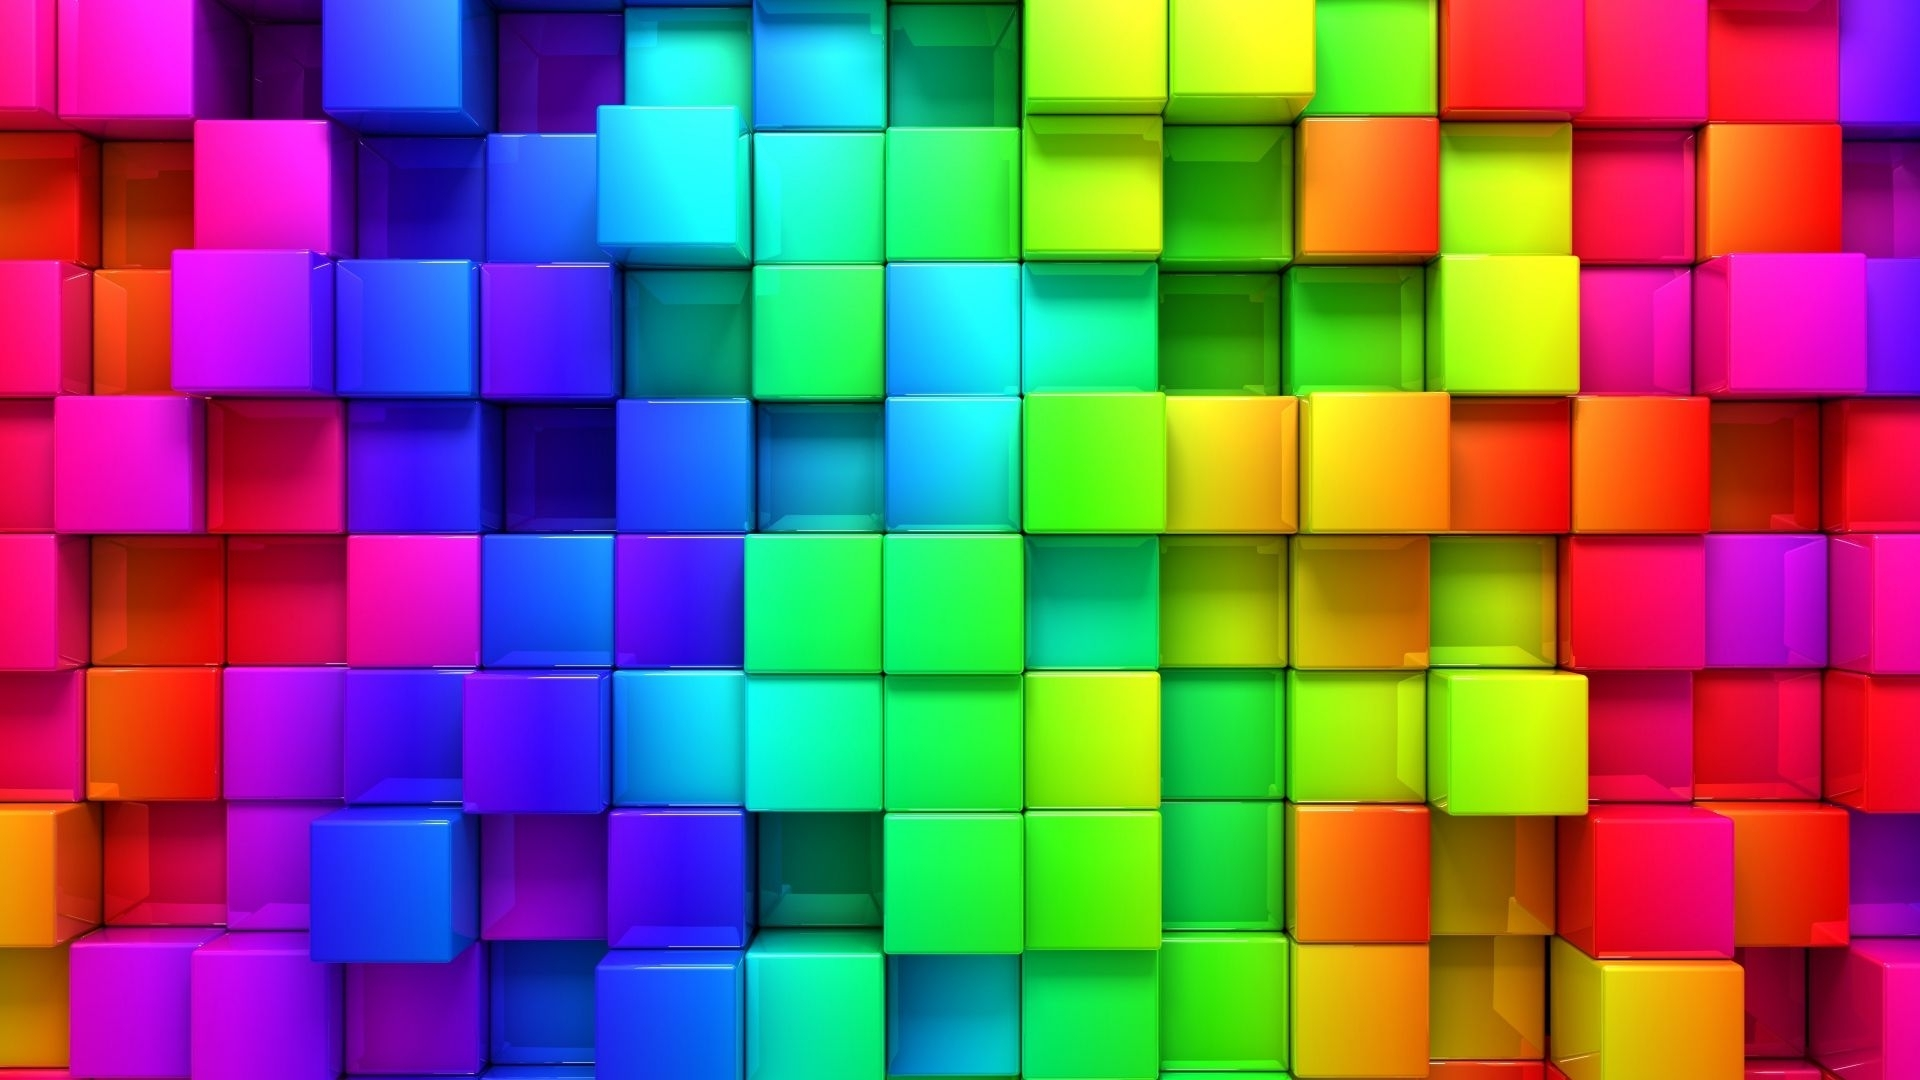 hd backgrounds : find best latest hd backgrounds in hd for your pc